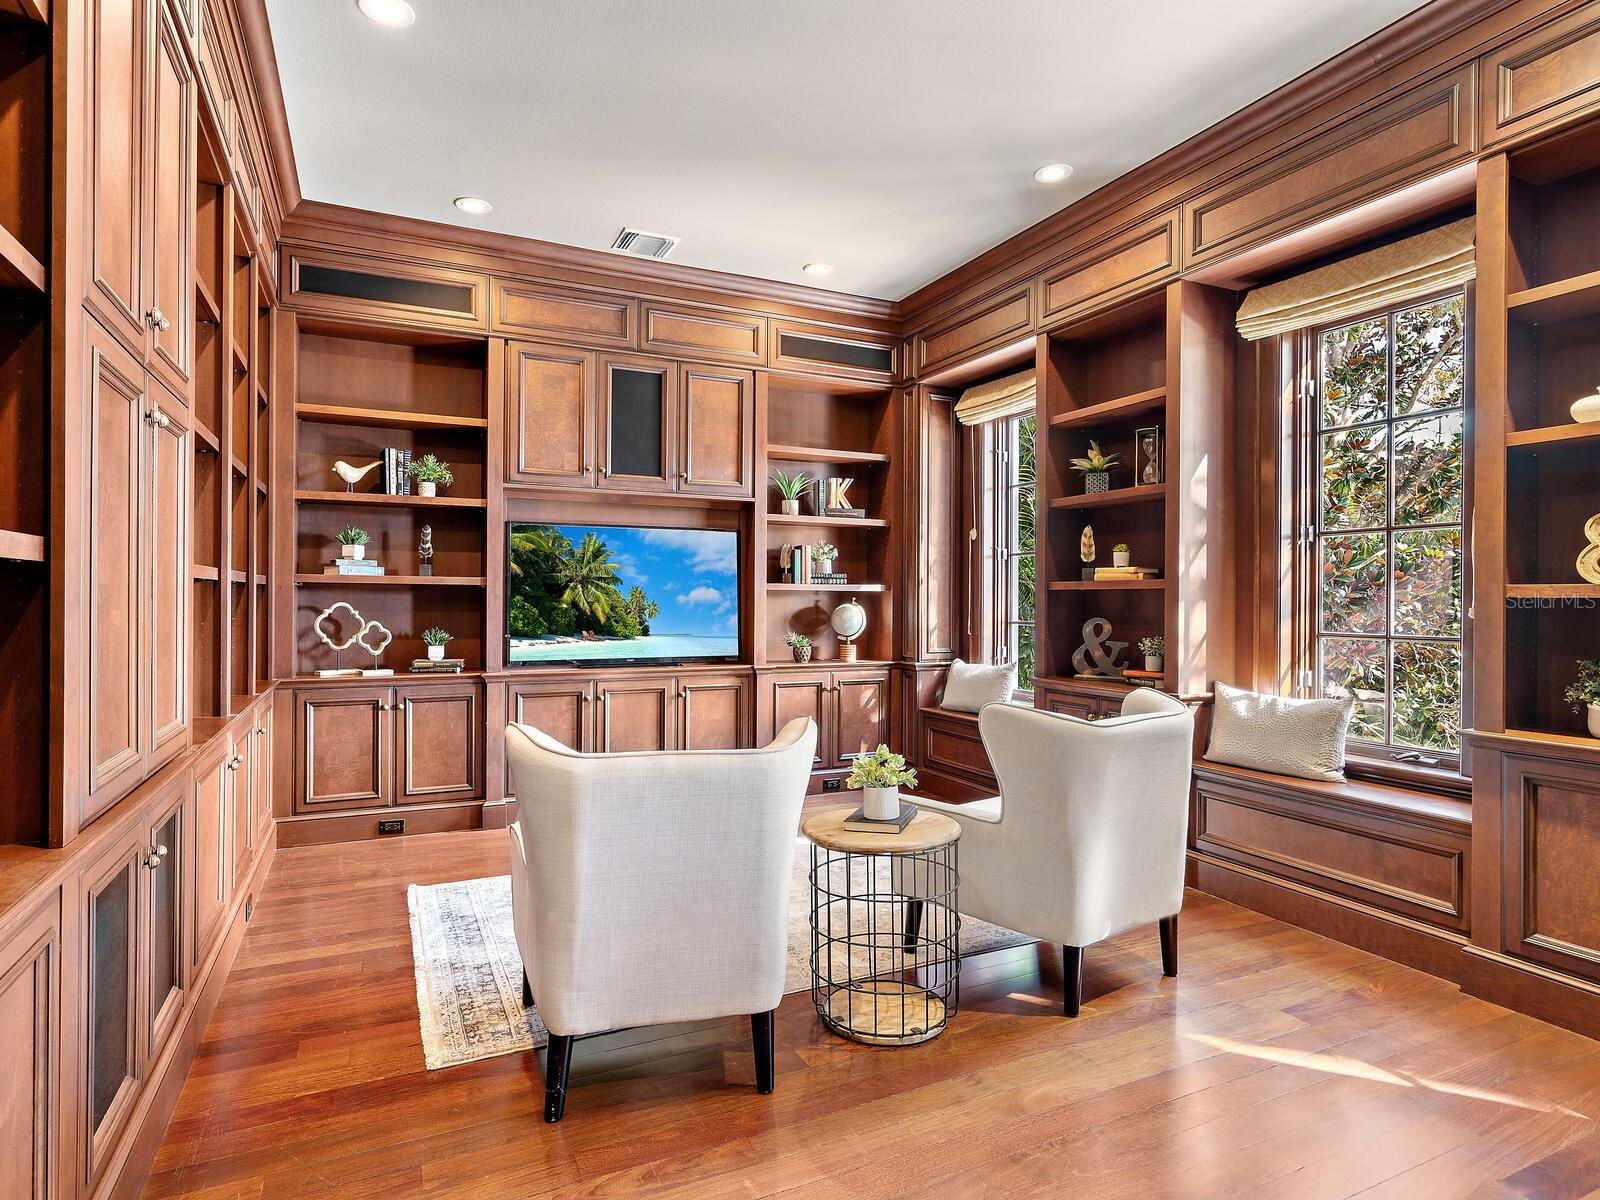 Single Family Home for sale at 3536 Bayou Louise Ln, Sarasota, FL 34242 - MLS Number is A4495995